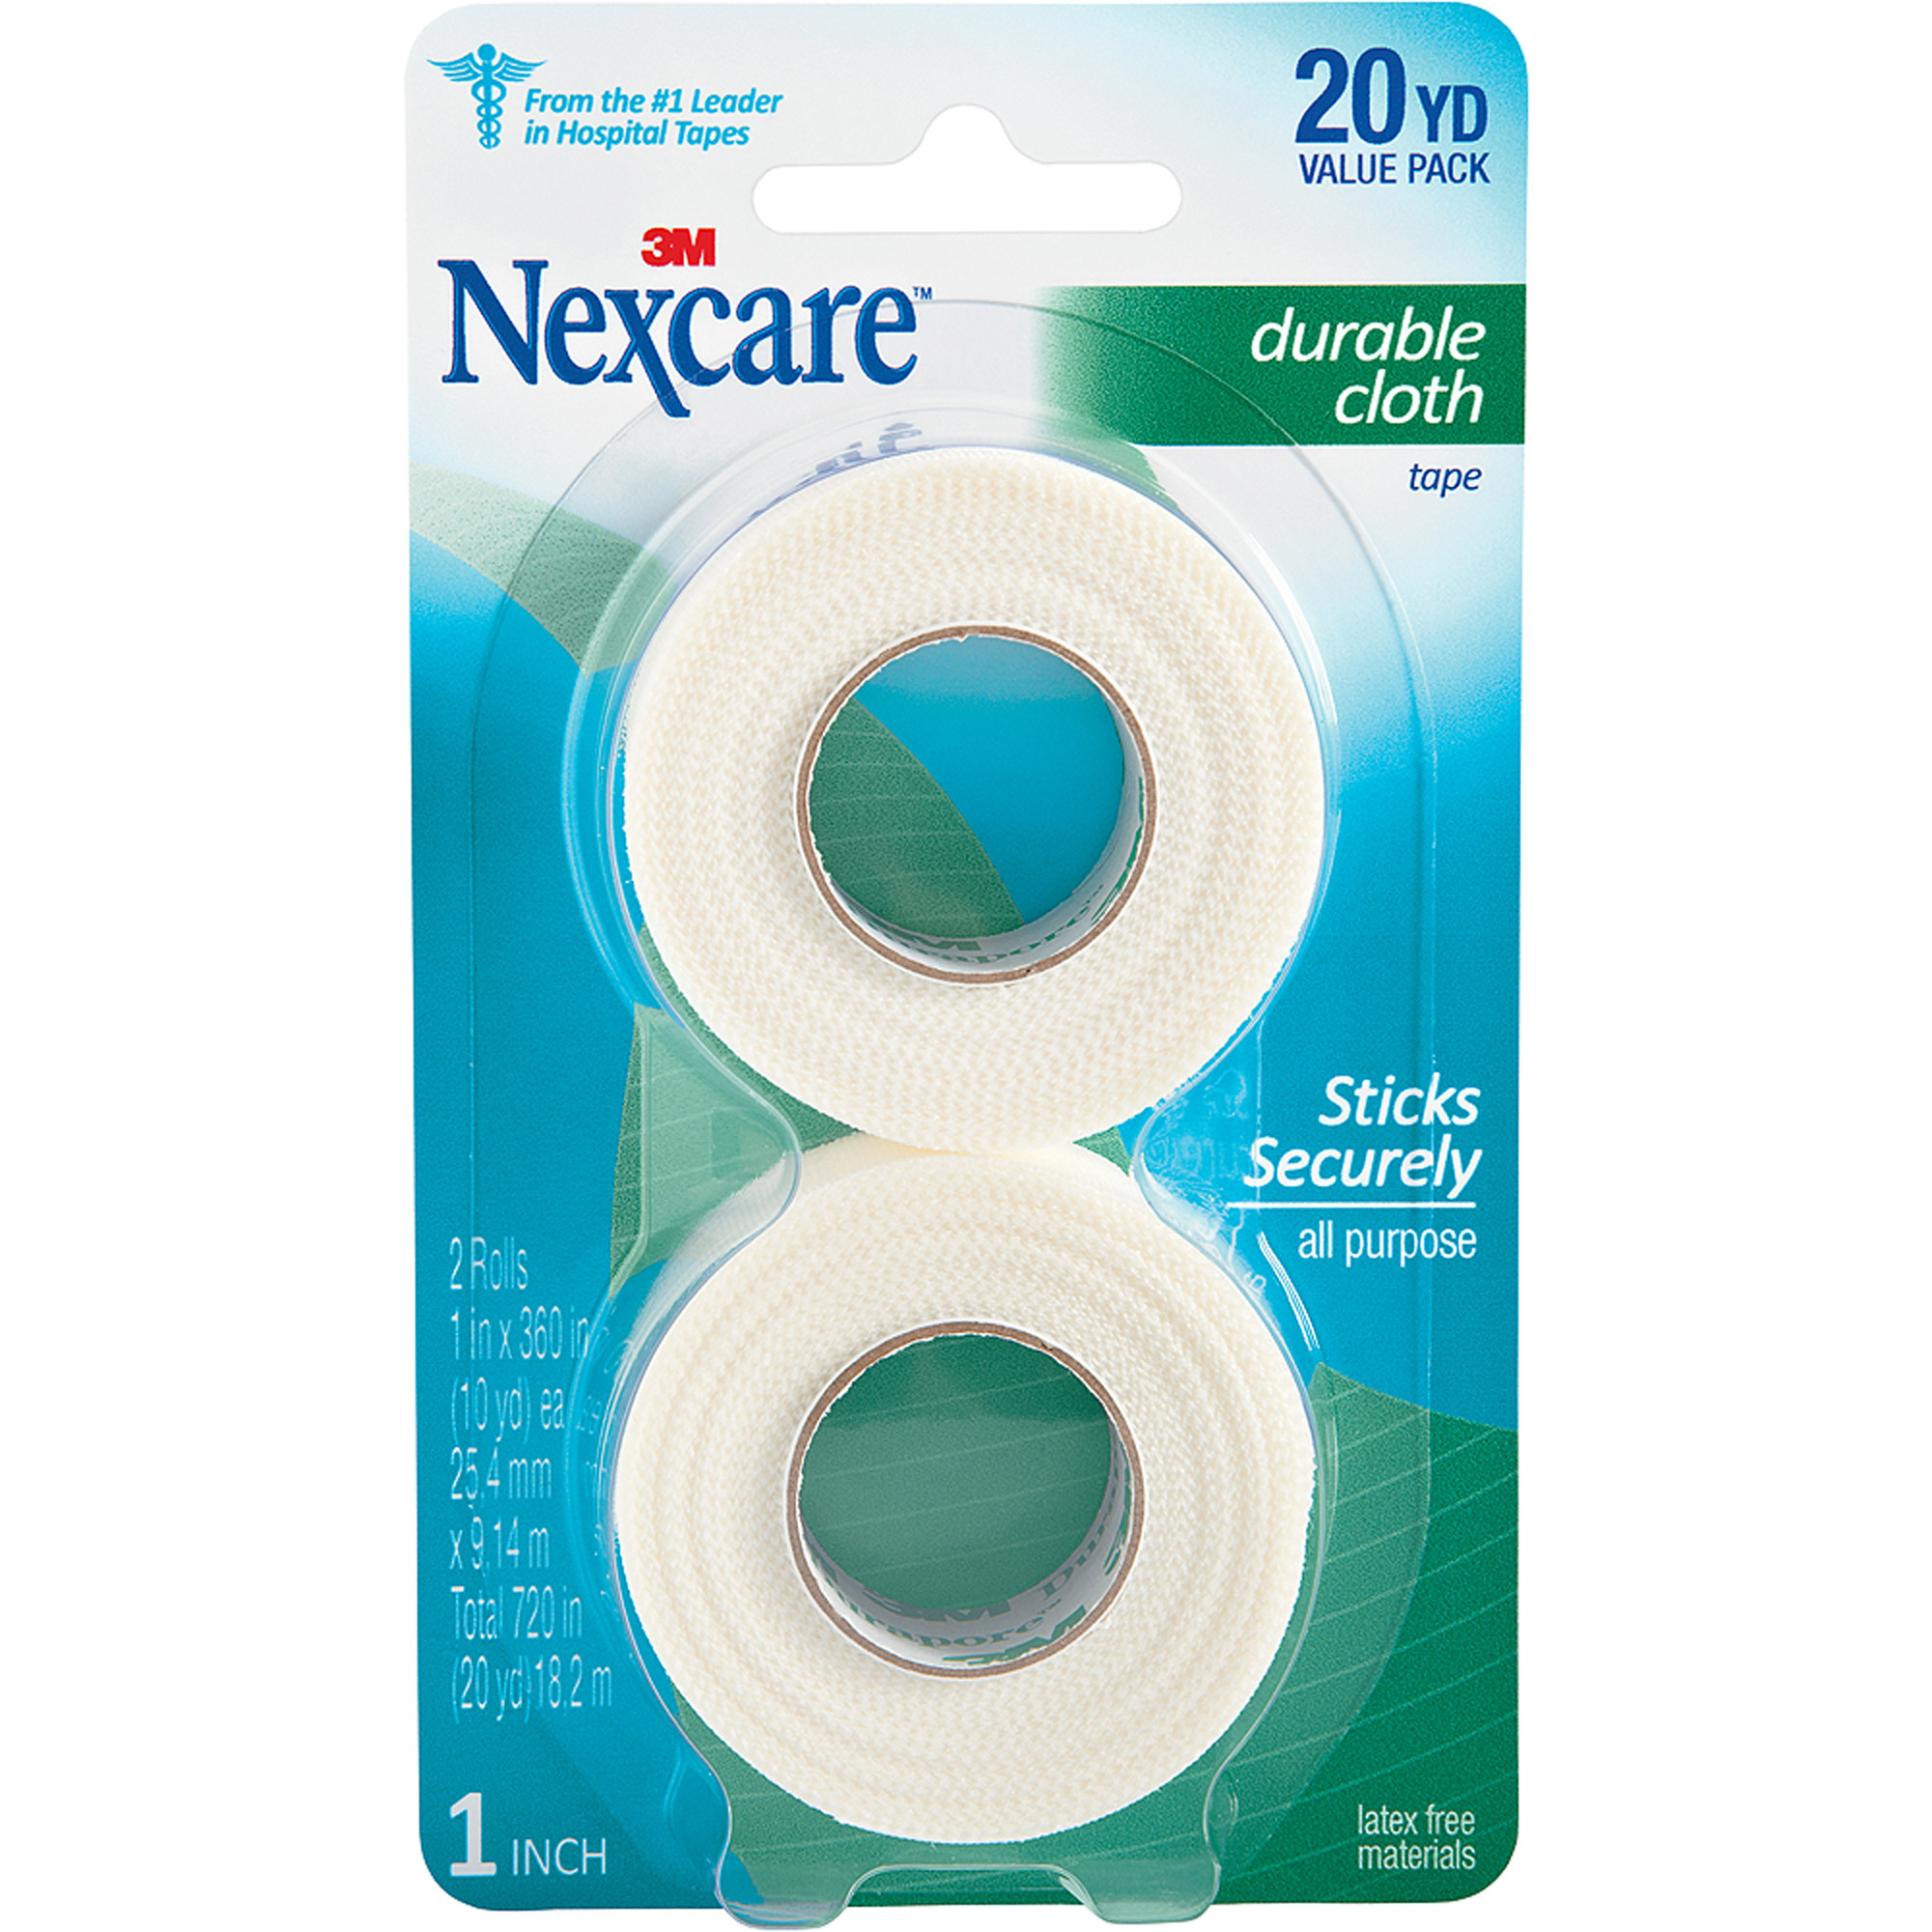 Nexcare Durable Cloth First Aid Tape, 791-2PK, 1 in x 10 yds, 2 rolls